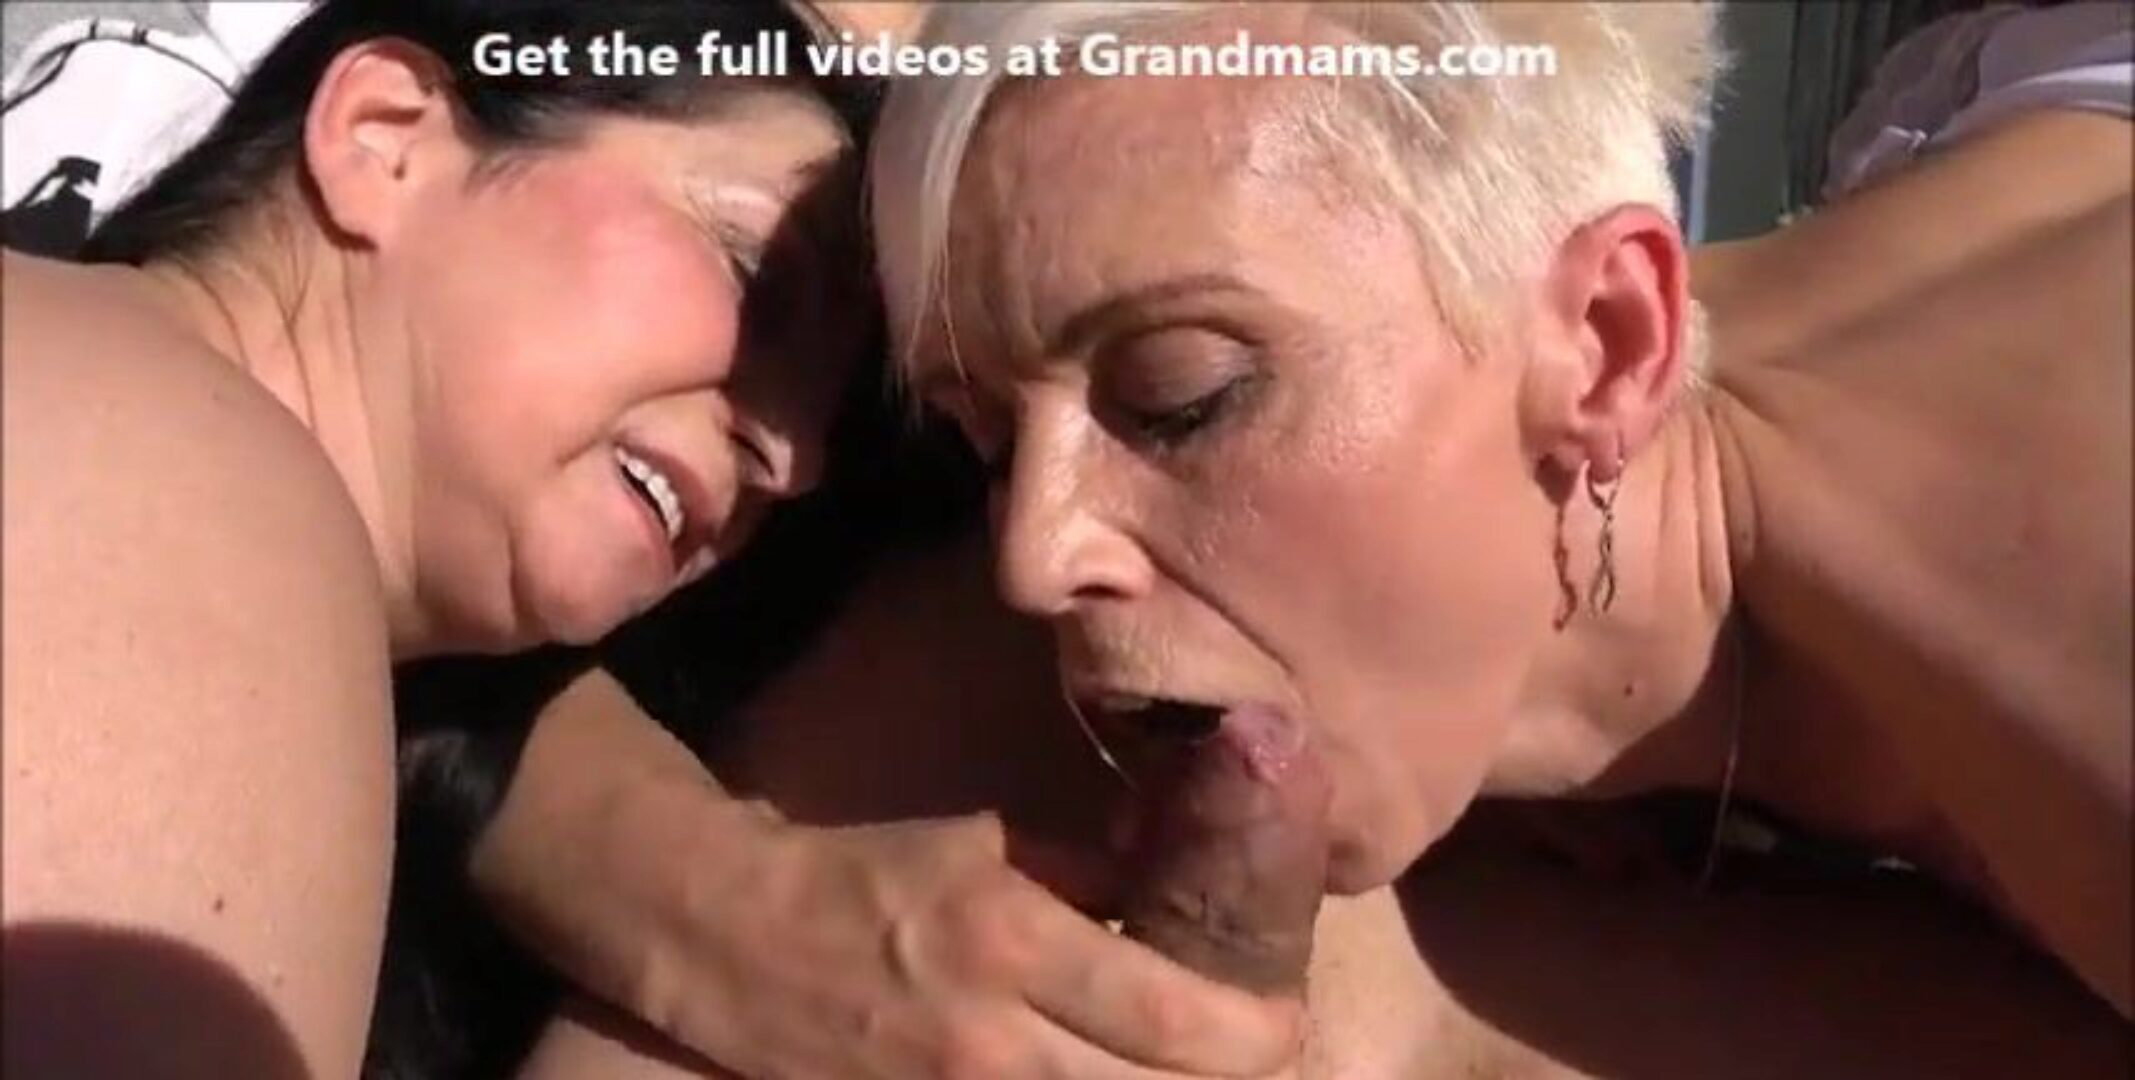 Grandmas Love Cum Watch the full movies at Grandmams.com Full 4k Ultra HD available for upload at GrandMams.com